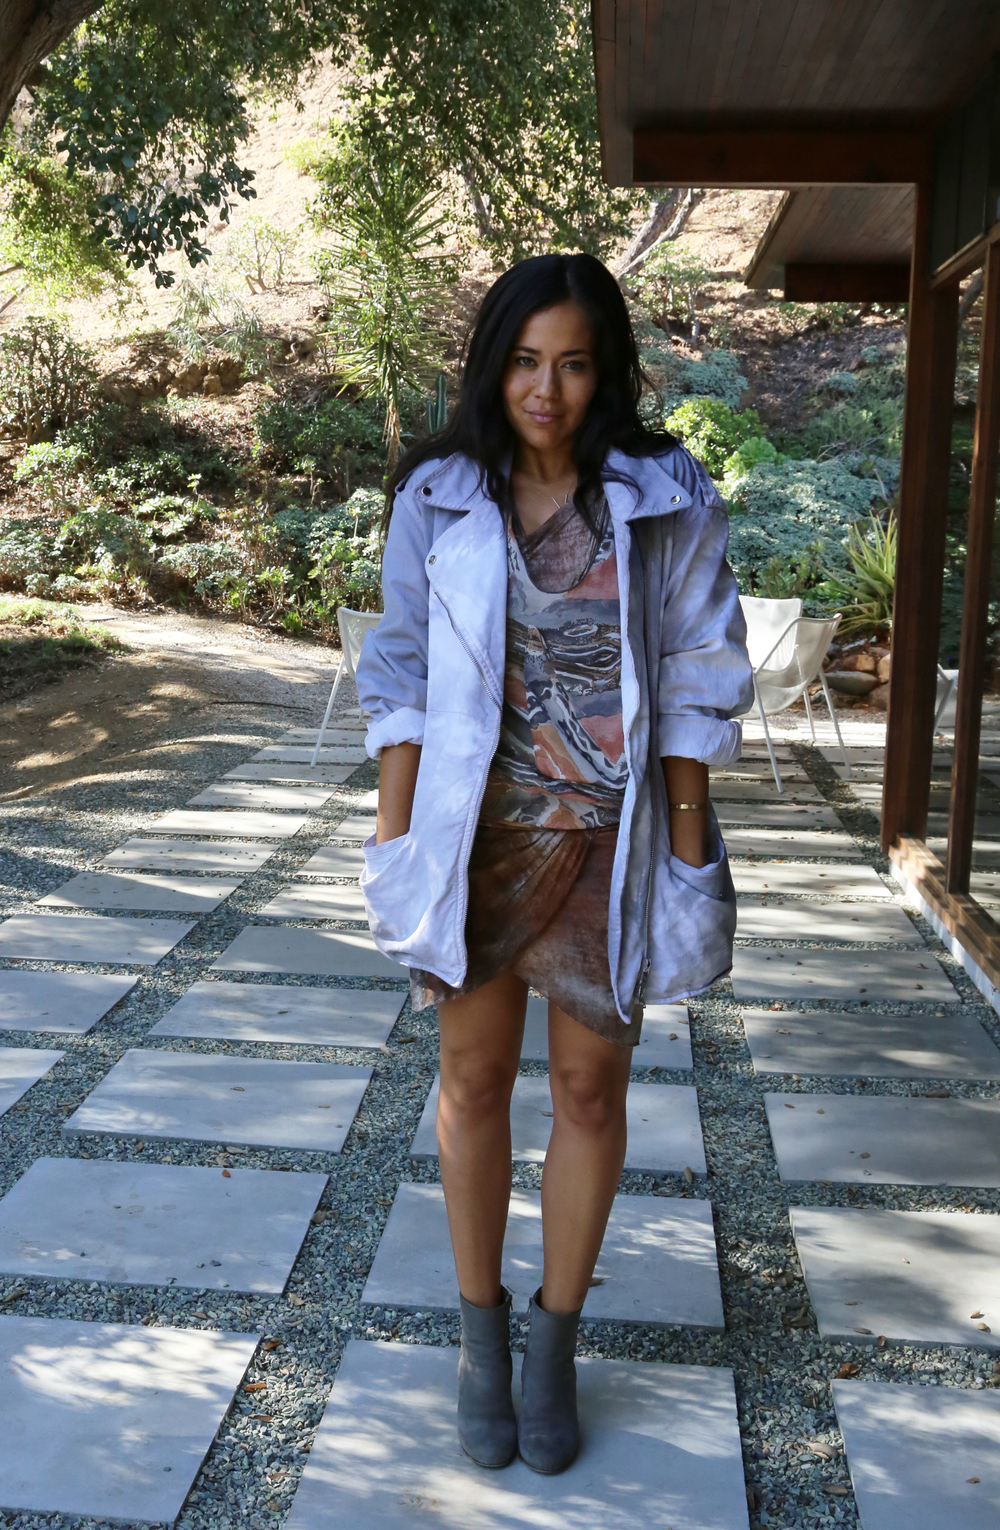 isabel-marant-jacket-helmut-lang-dress-margiela-wedge-los-angeles.jpg